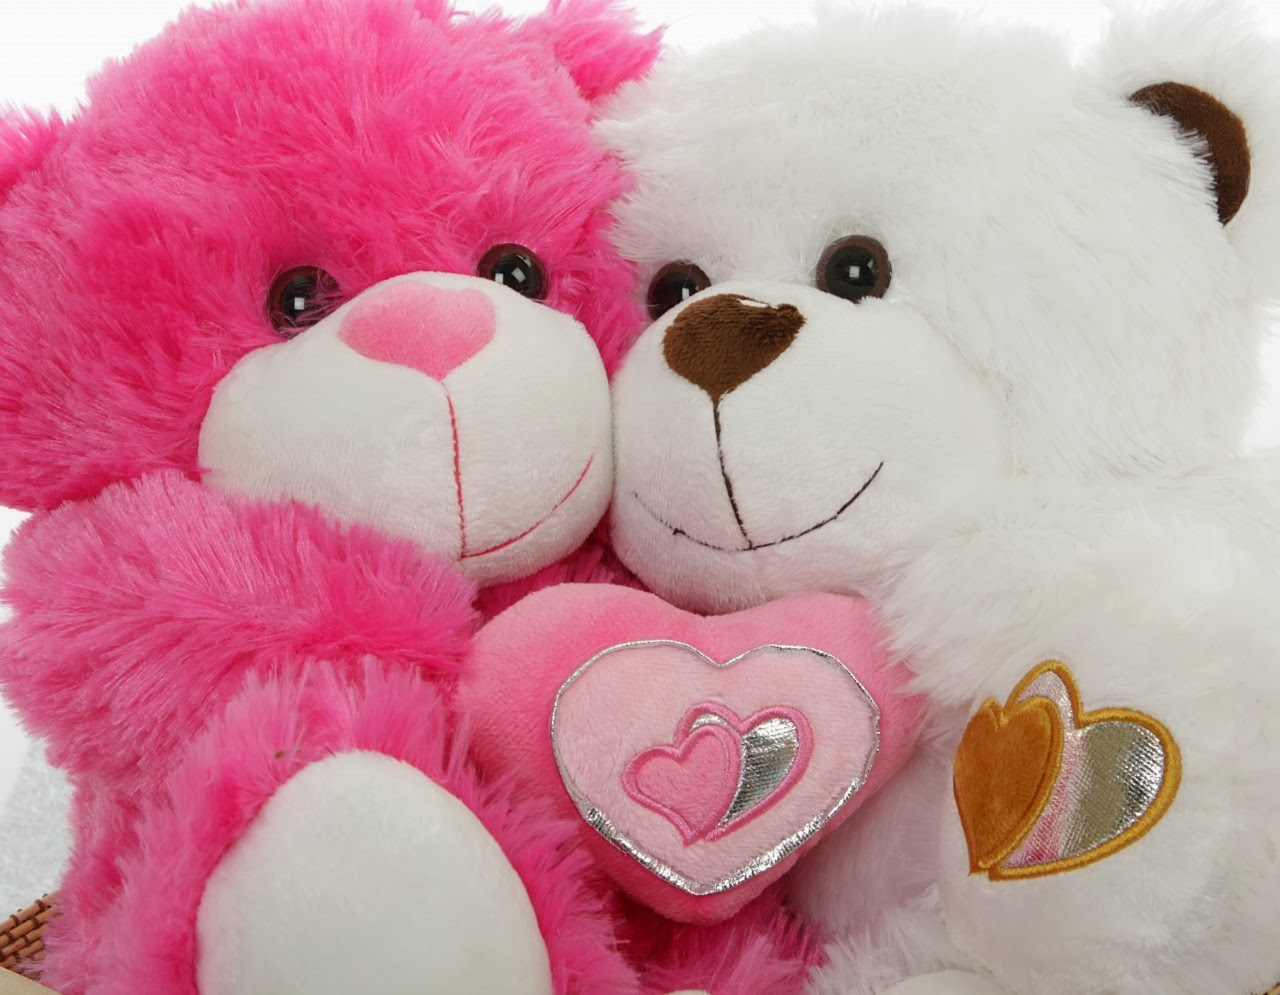 pink-and-white-cute-teddy- bear-pair.jpg